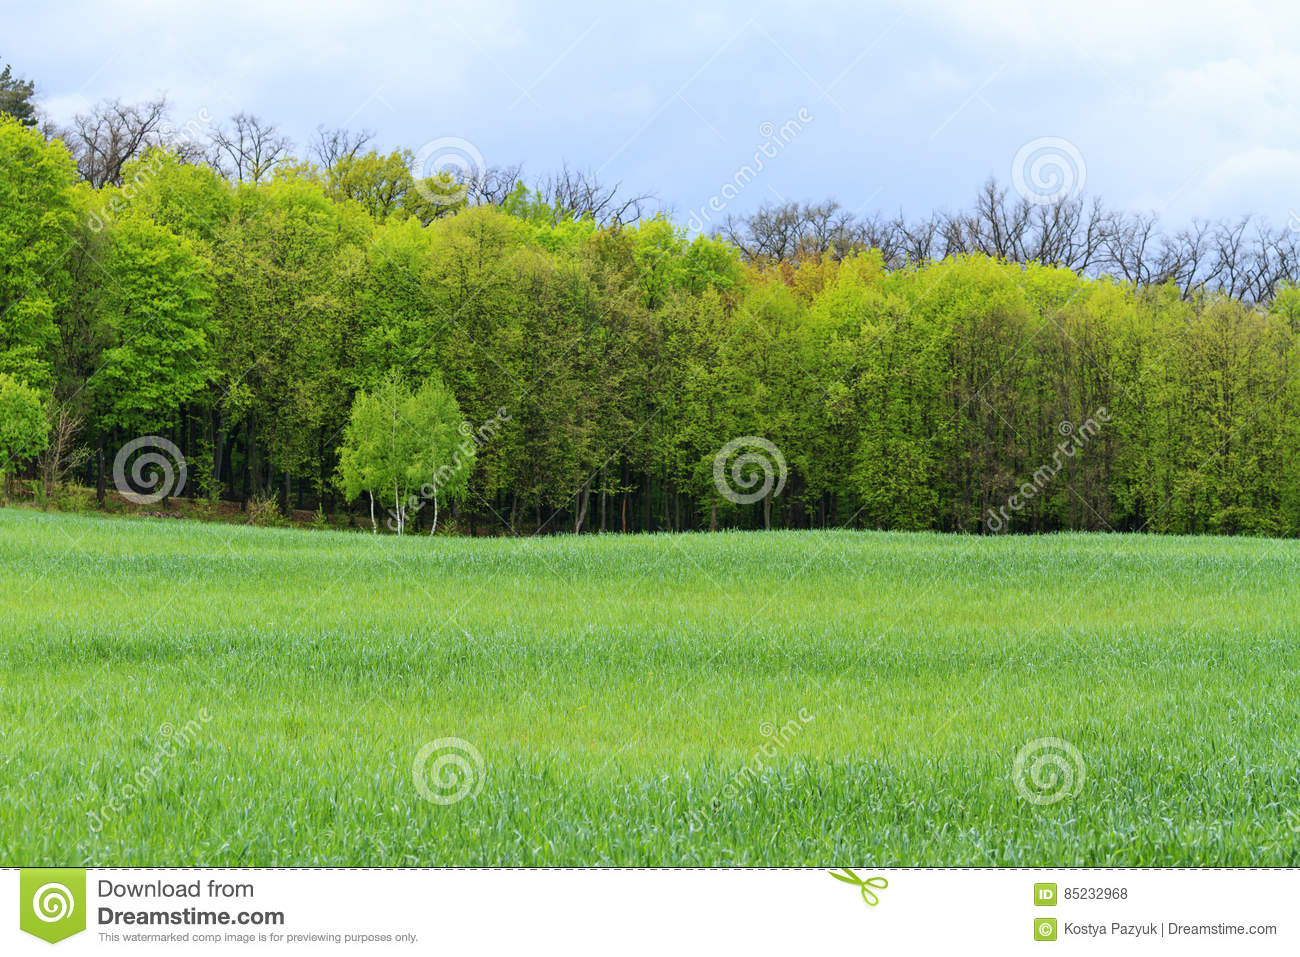 Landscape With Trees - Desktop Images On A Computer Stock Photo ...